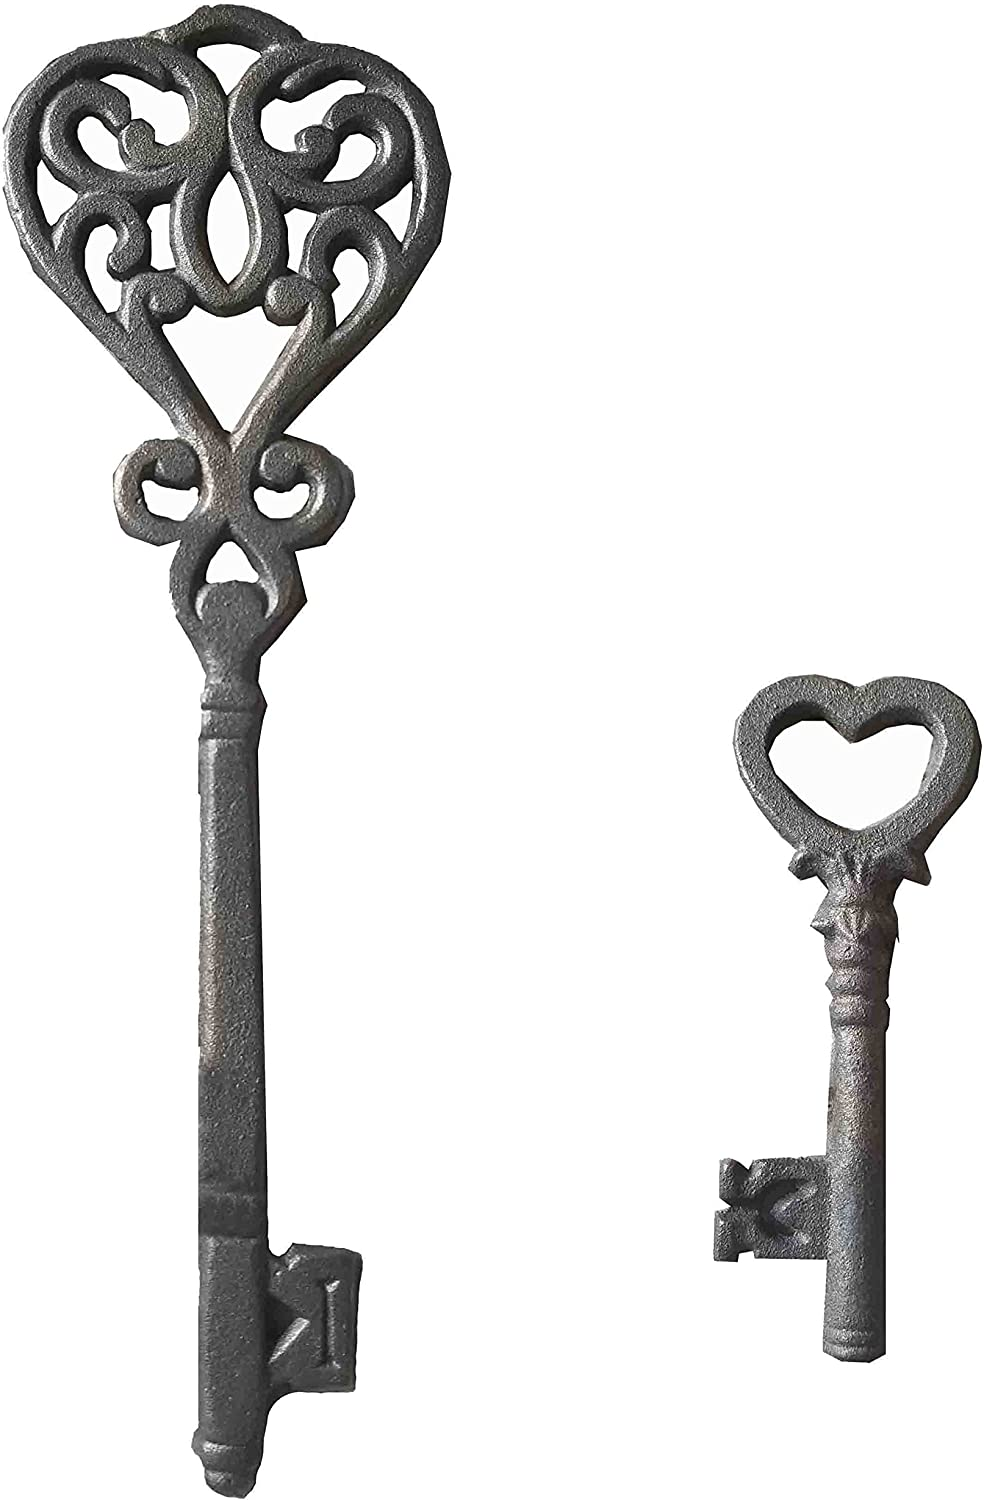 Johouse Large Iron Decorative Skeleton Key